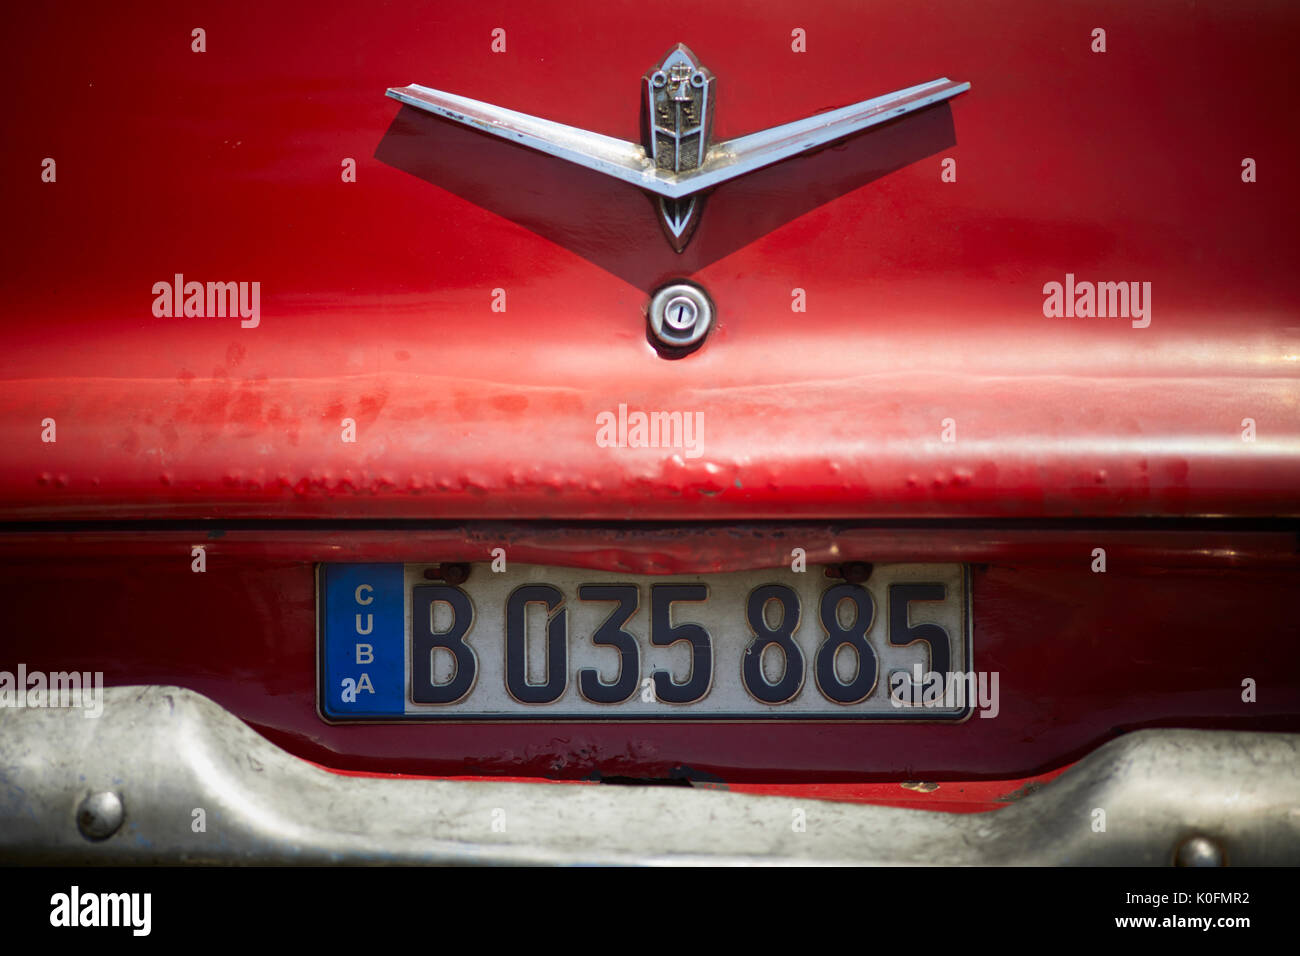 Colorful Motor Car Registration Plate Stock Photos & Colorful Motor ...